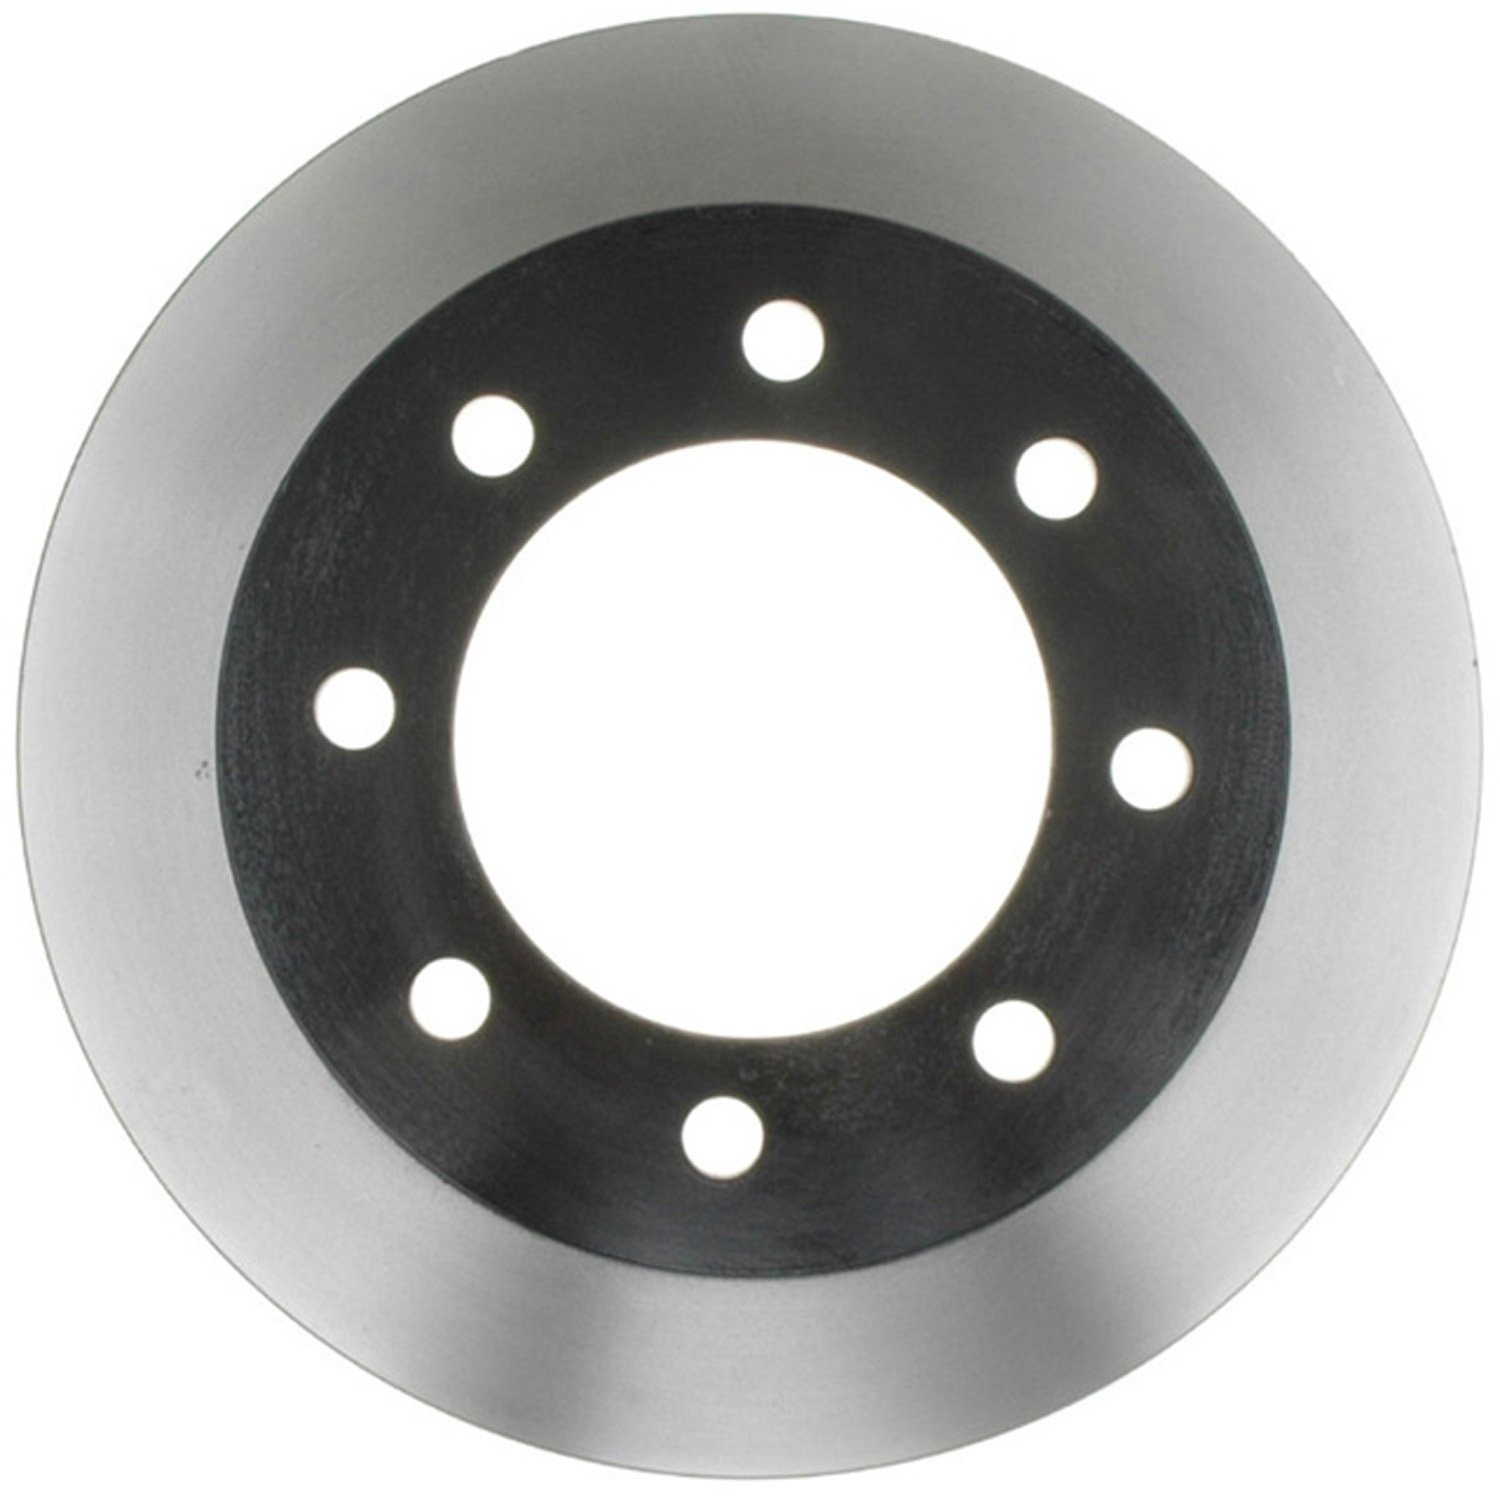 ACDelco 18A926 Professional Durastop Rear Disc Brake Rotor Assembly